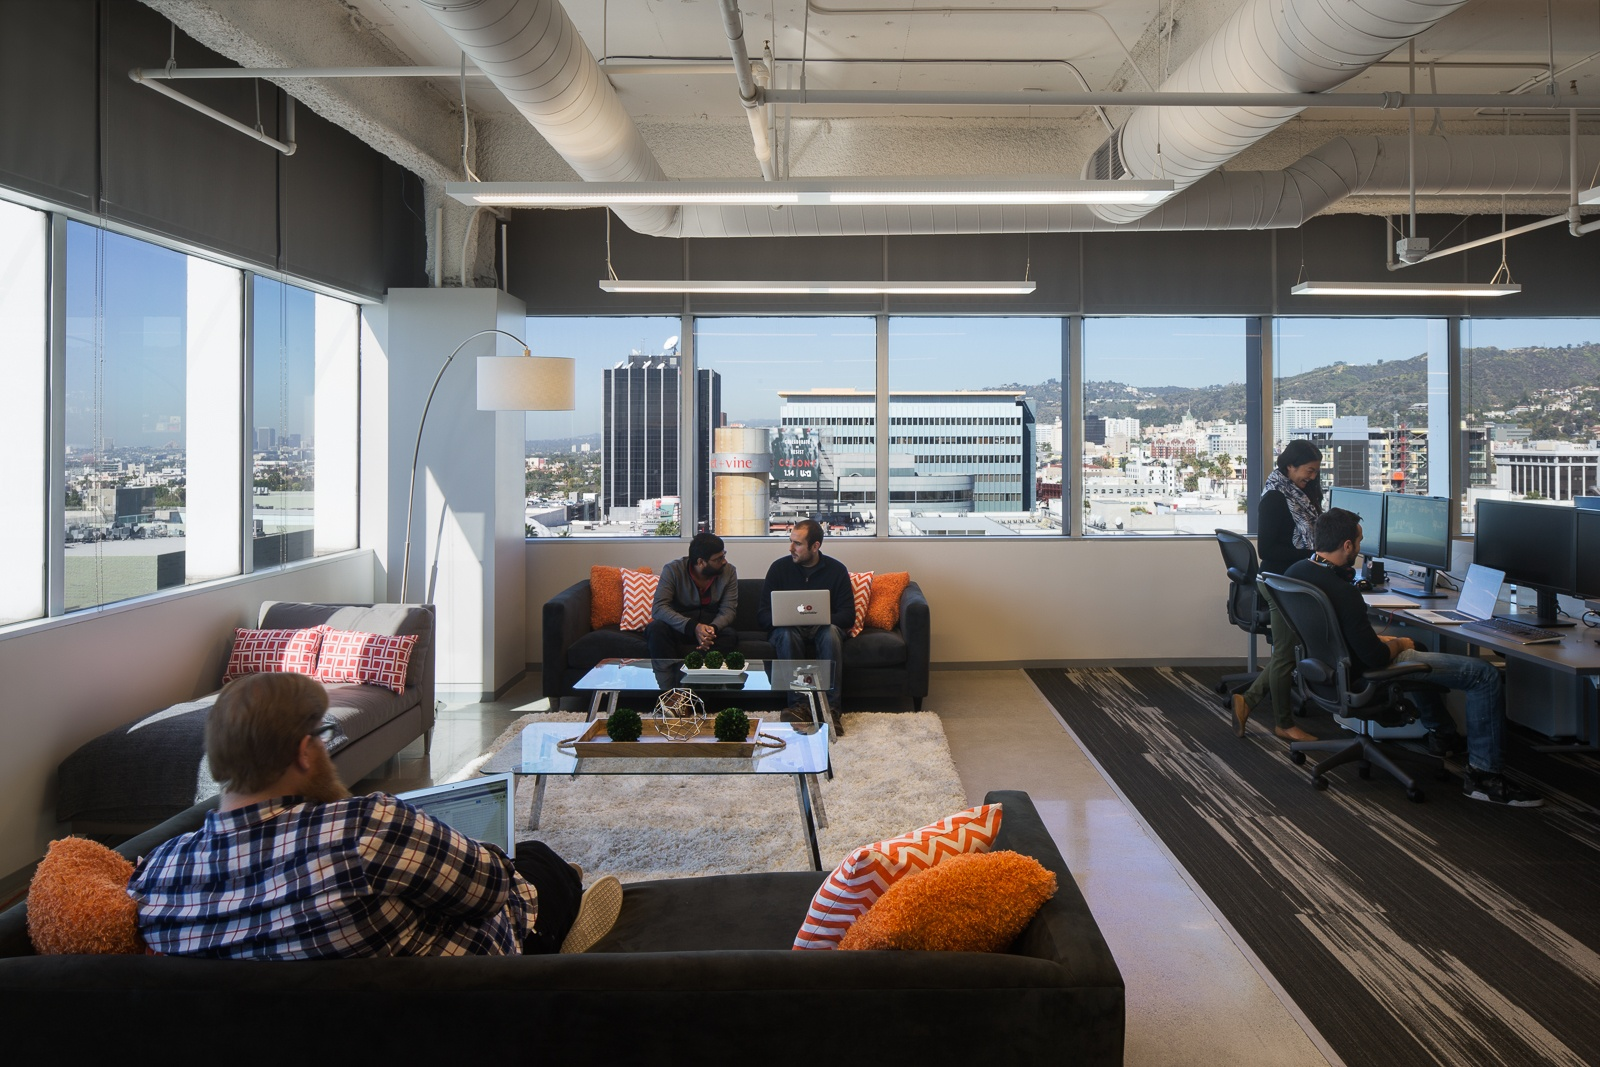 a look inside opentable s los angeles office officelovin rh officelovin com opentable london office phone number opentable london office phone number